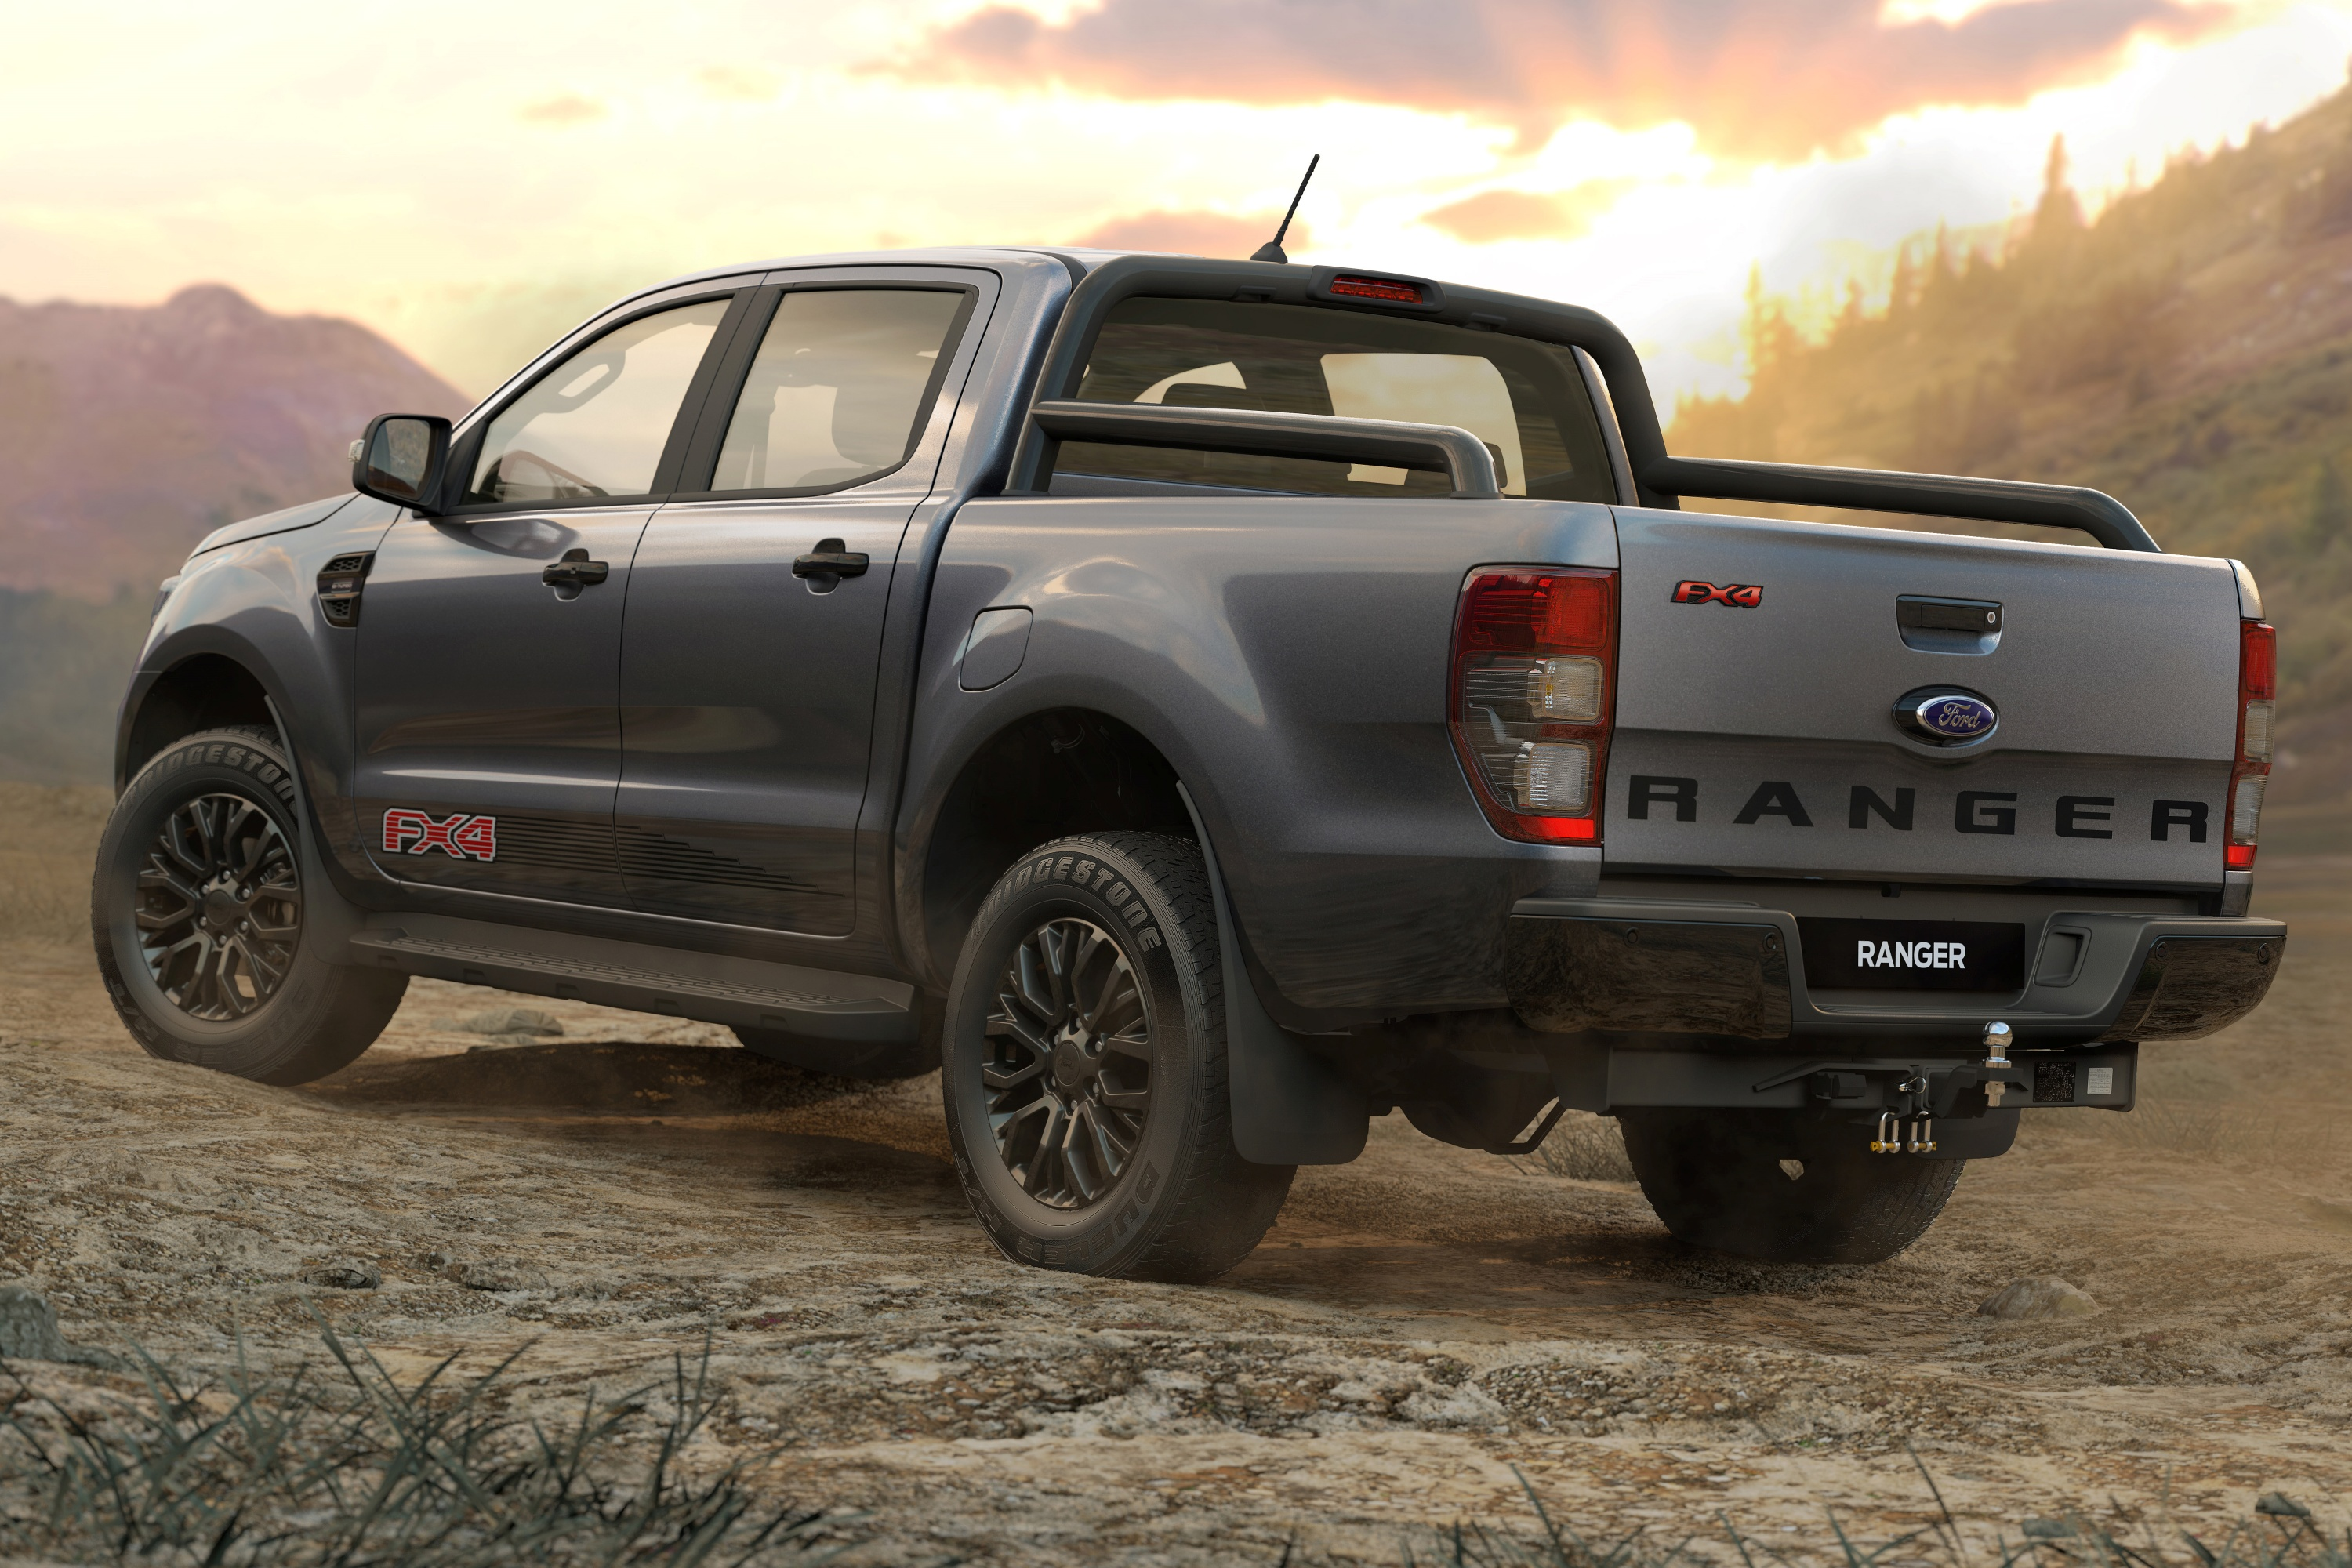 Ford Ranger FX4 Special Edition rear